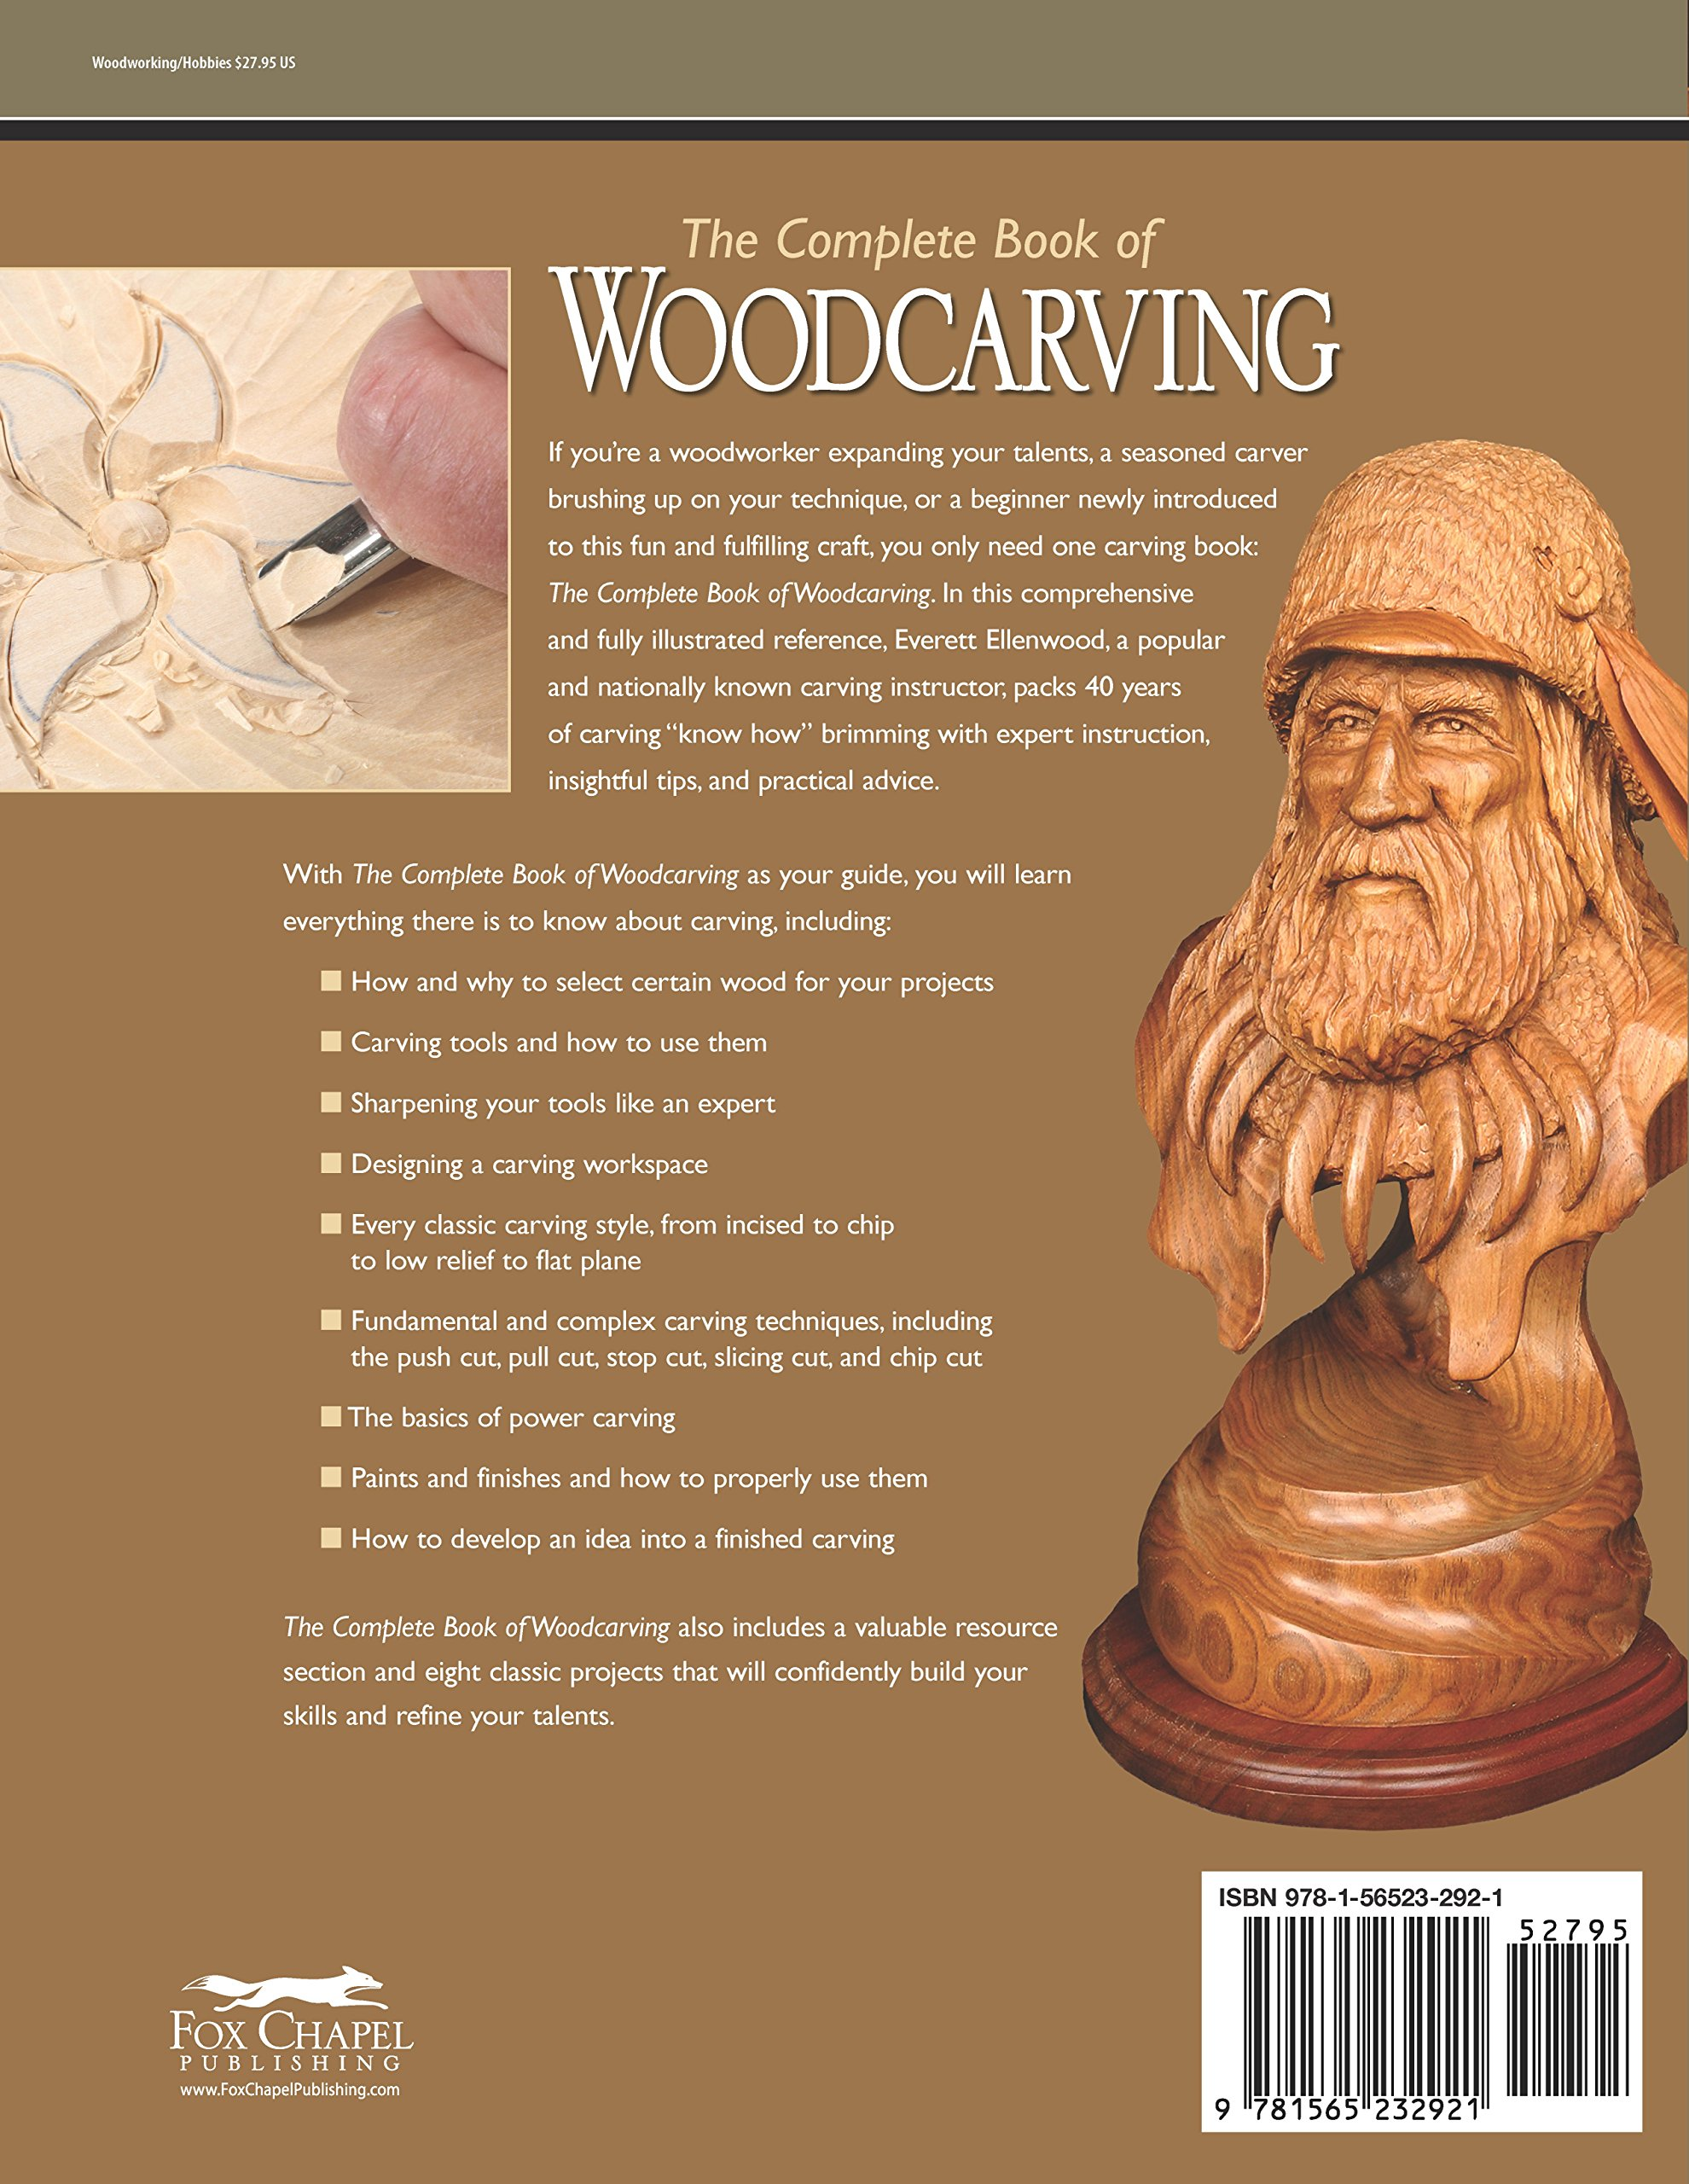 The complete book of woodcarving everything you need to know to